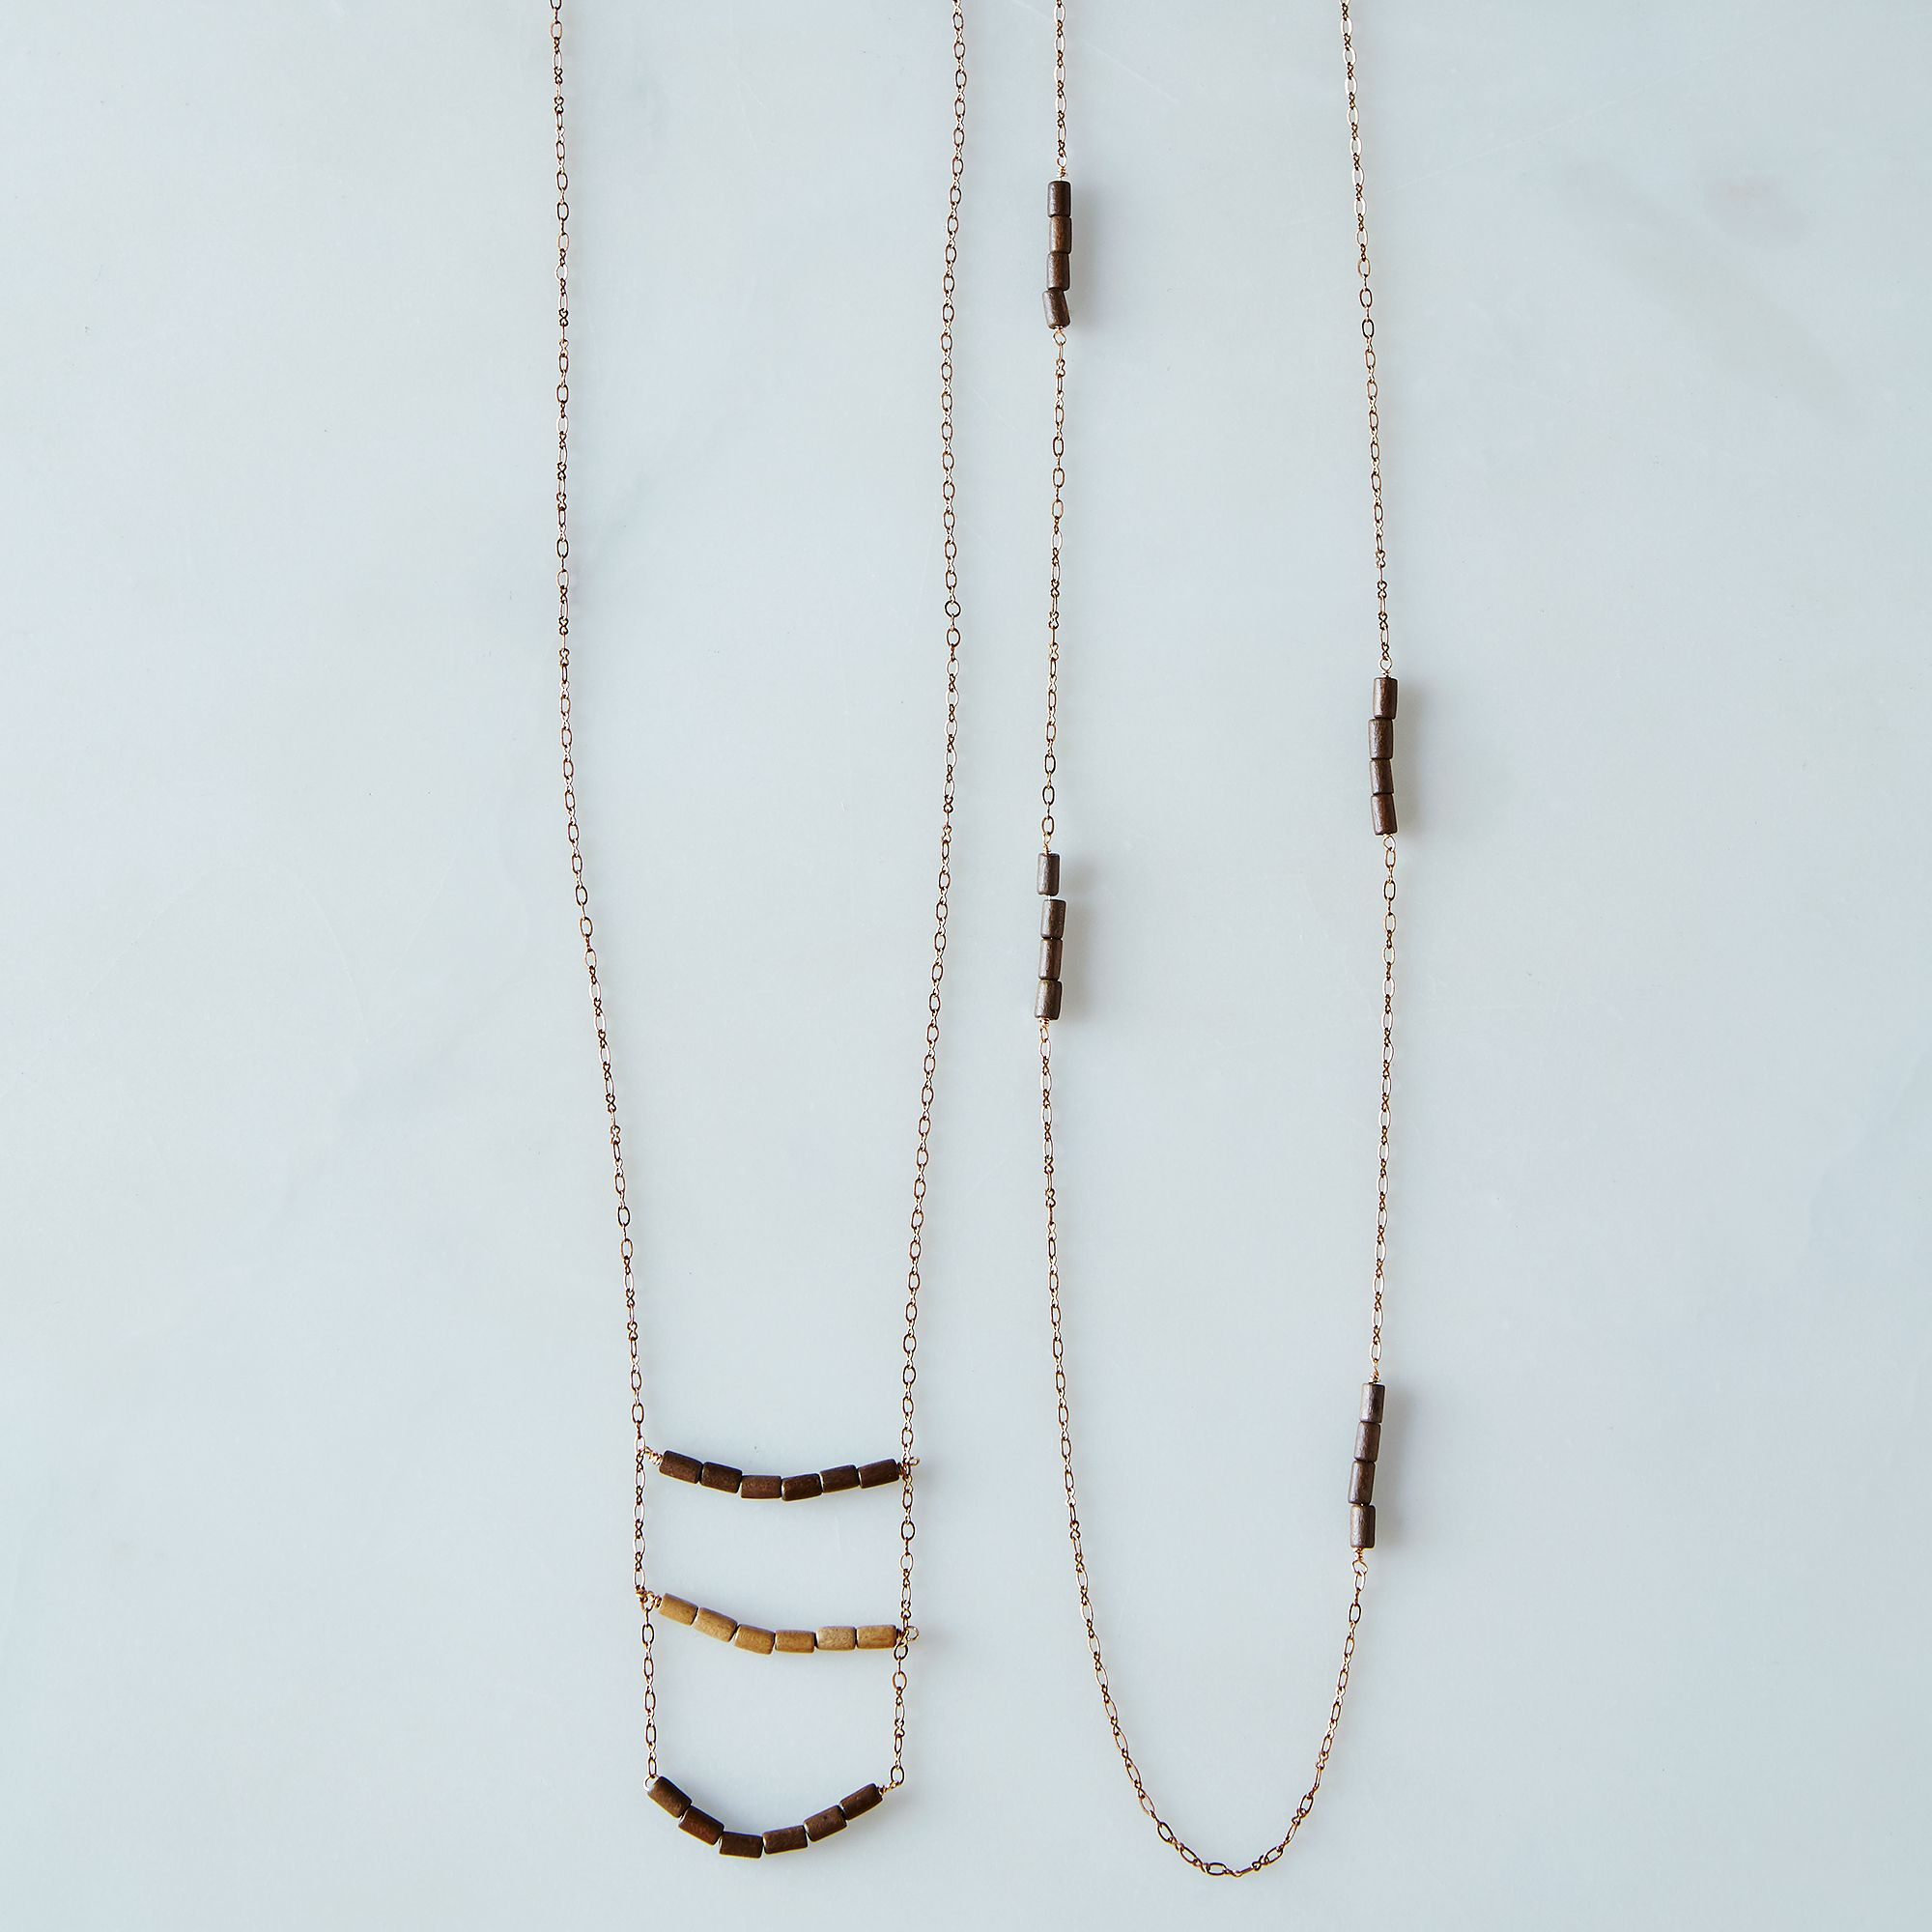 F8390c2e a0f7 11e5 a190 0ef7535729df  2015 0311 brass and wood necklace set of 2 walnut stained silo 065